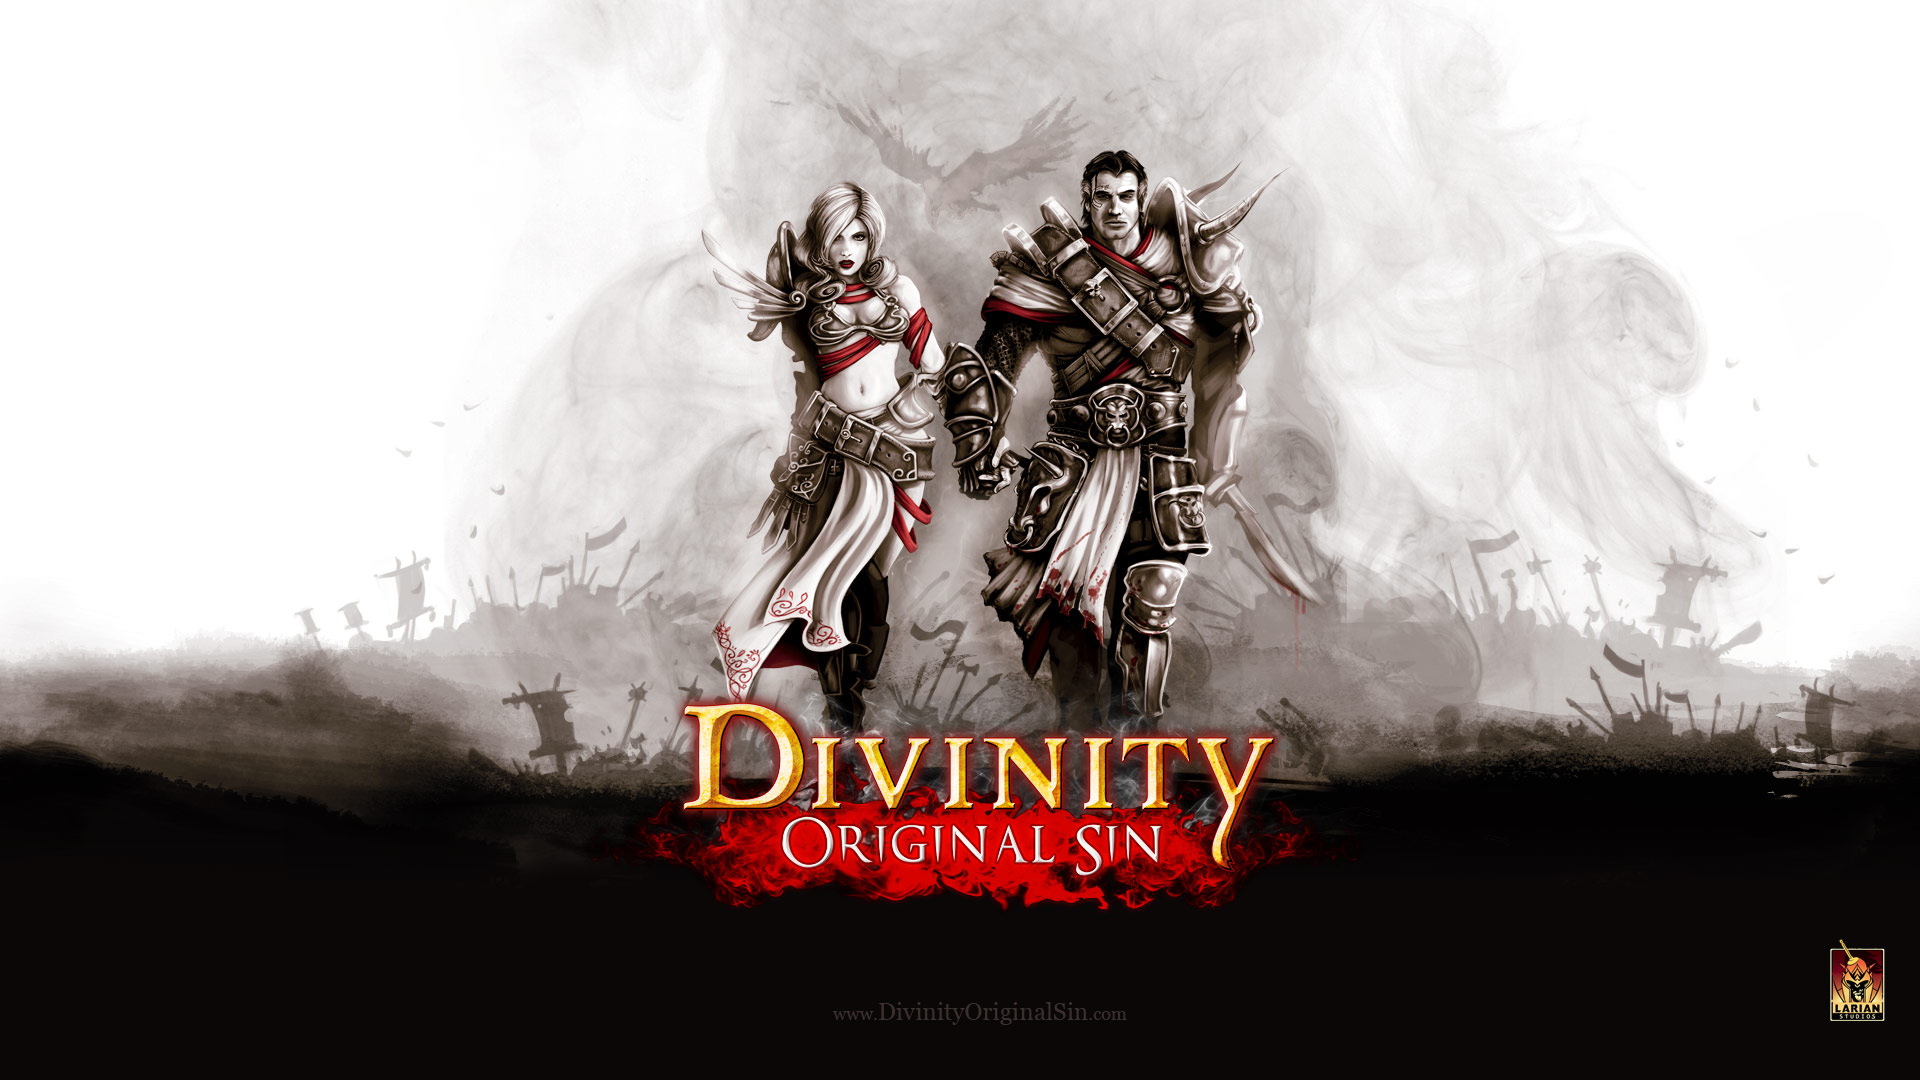 Divinity: Original Sin – My Mid-Year RPG Game Of The Year